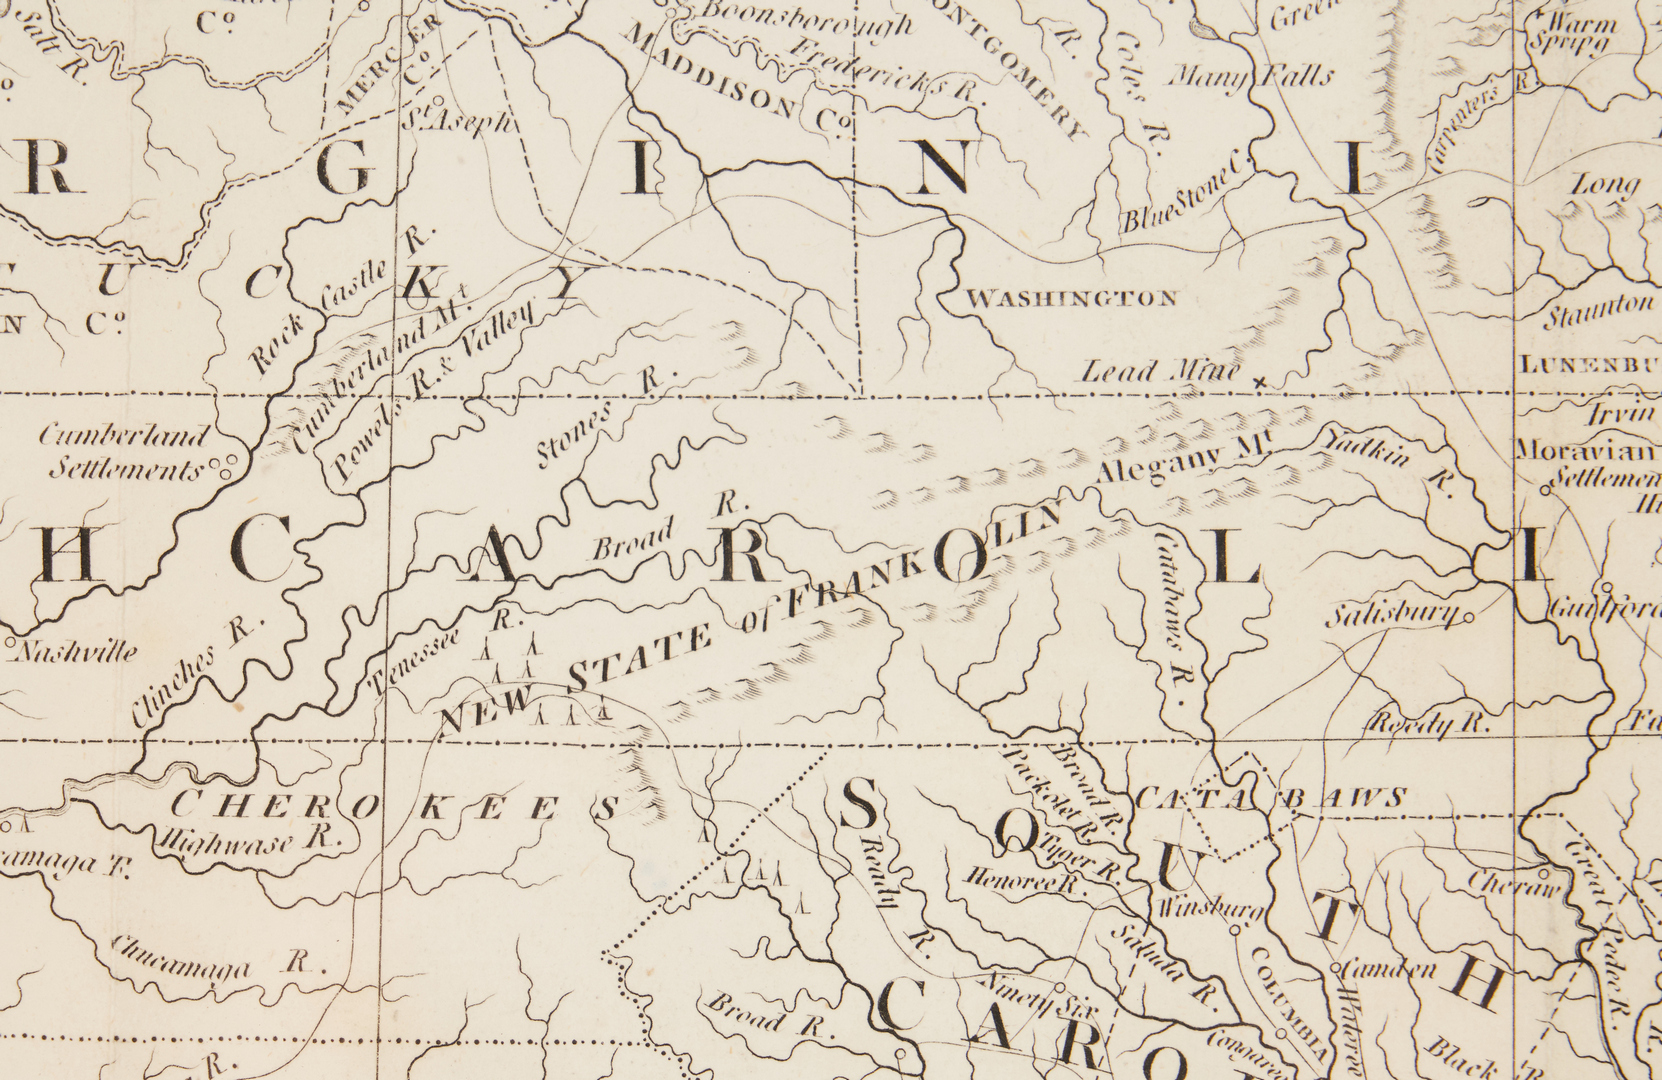 Lot 587: State of Franklin Map, Purcell